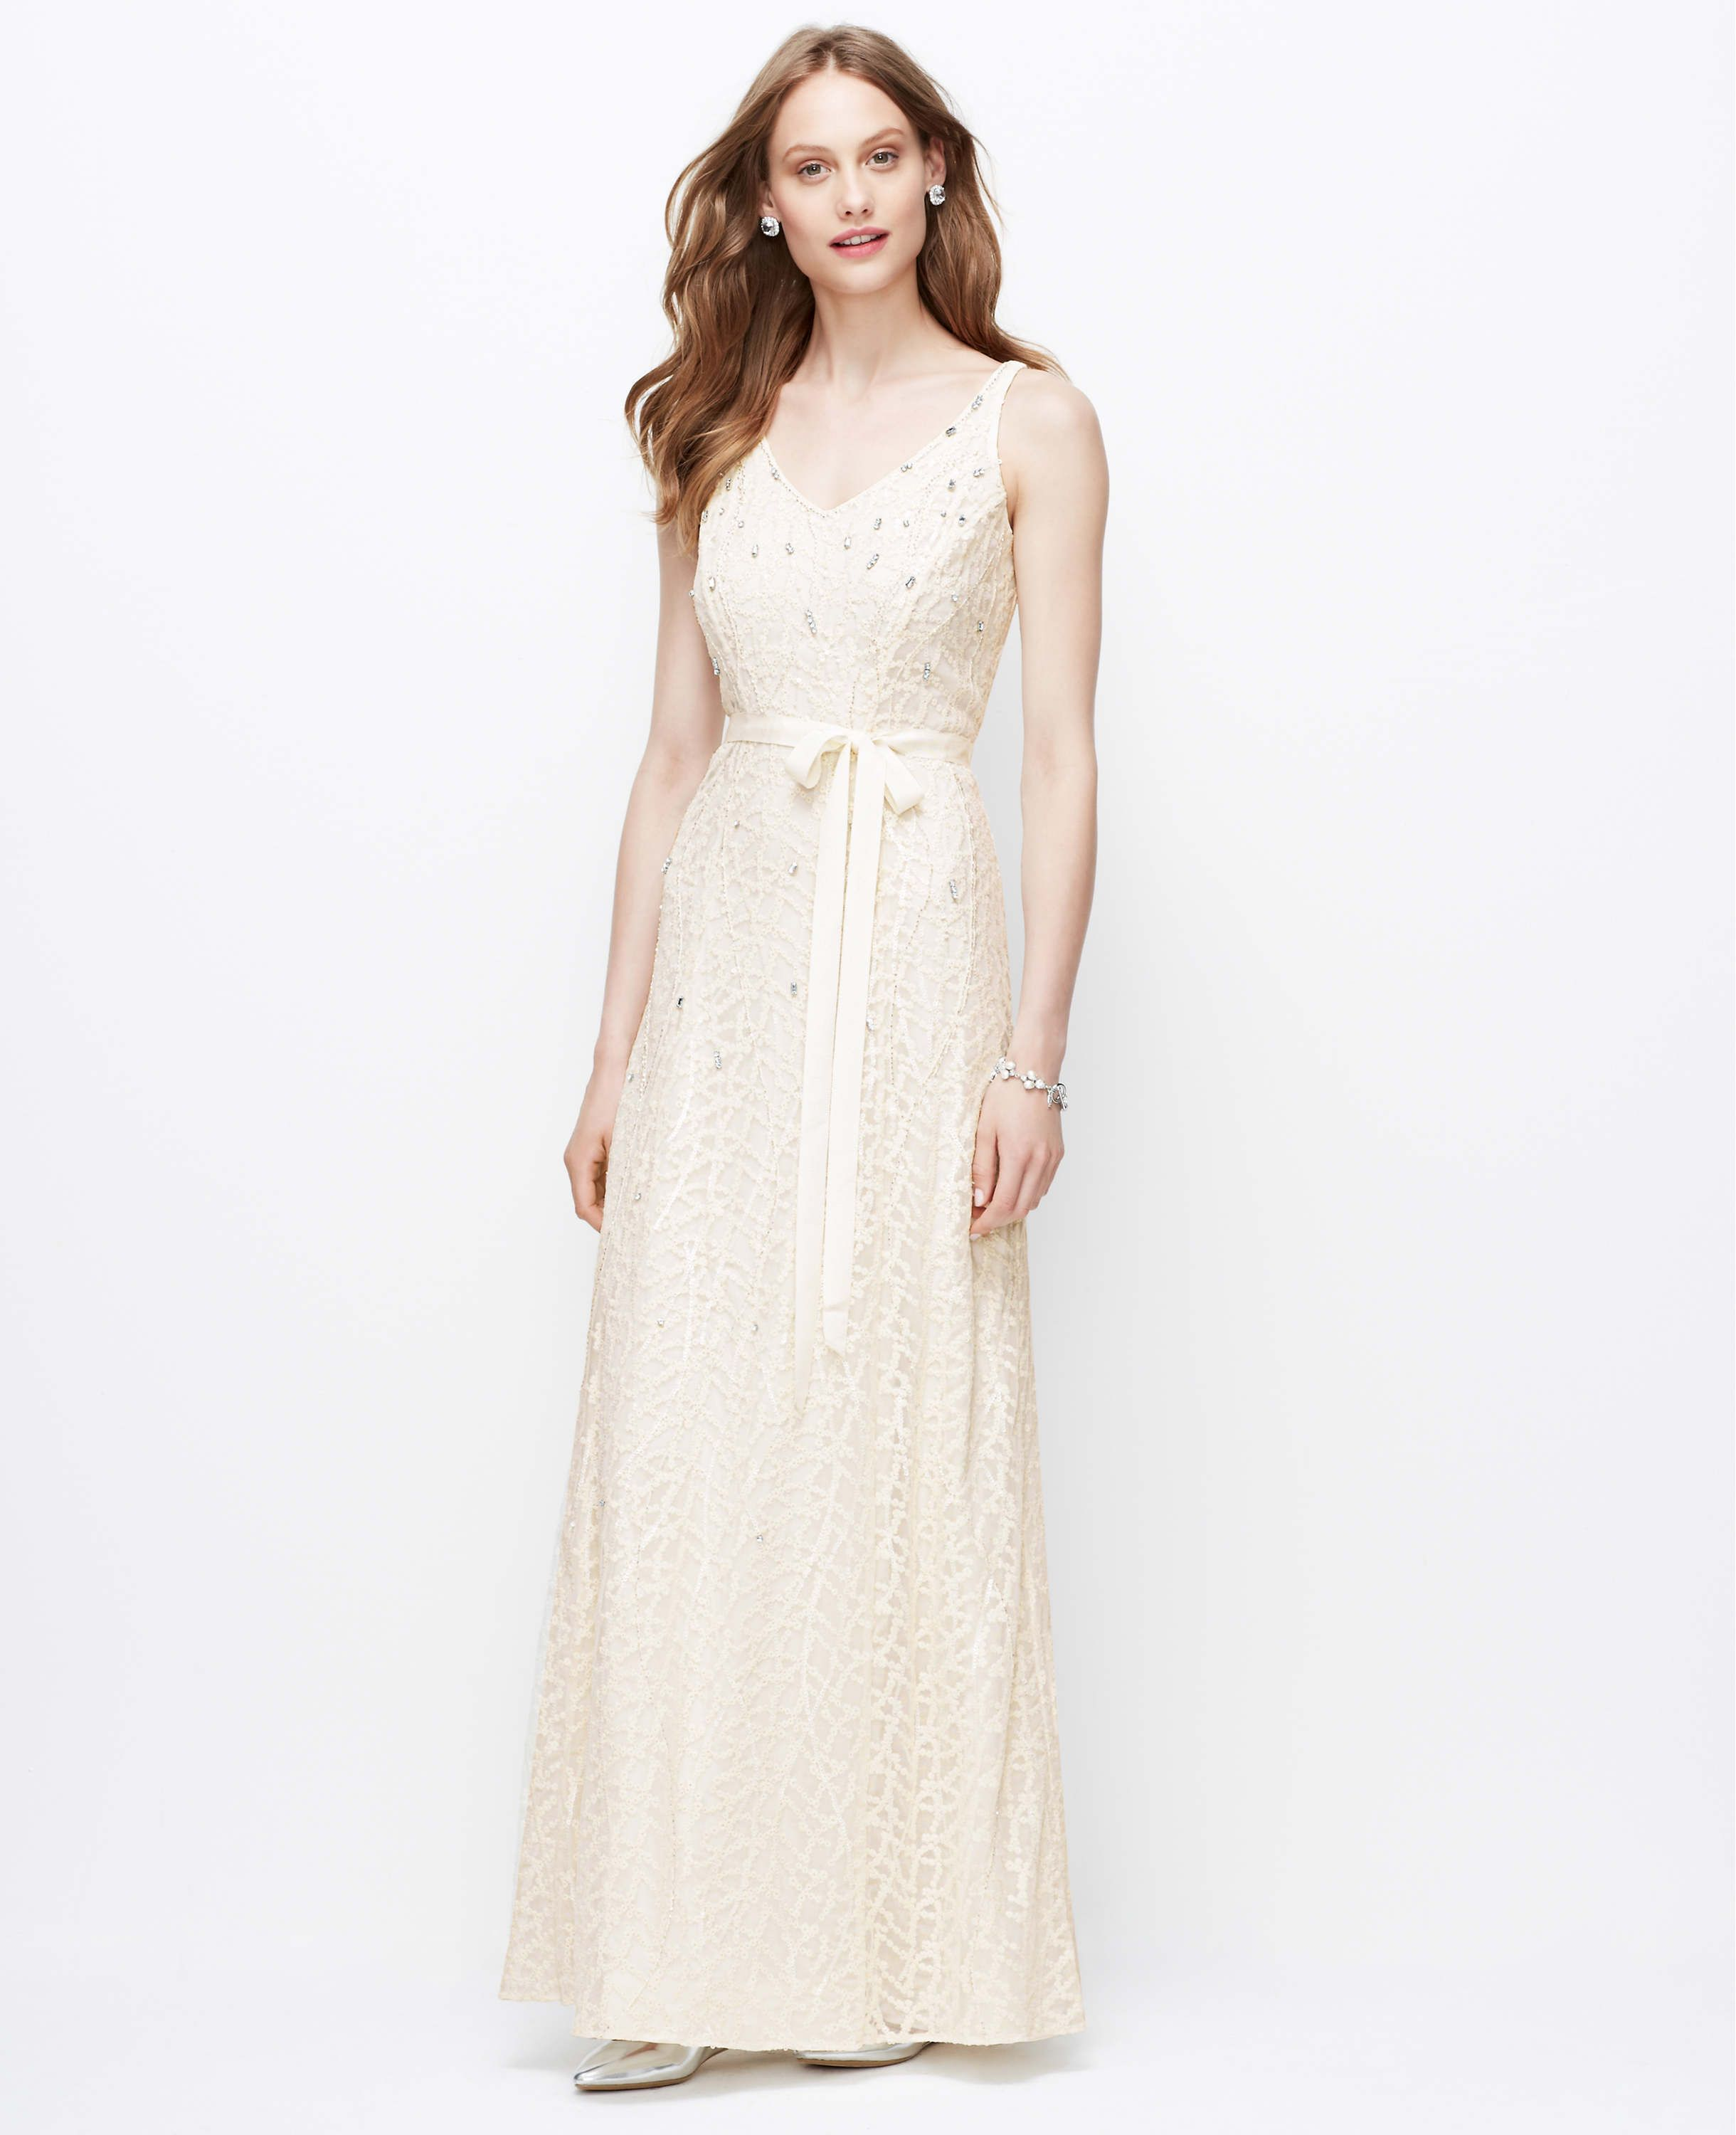 Embellished V-Neck Wedding Dress | Ann Taylor | Wedding Gowns ...